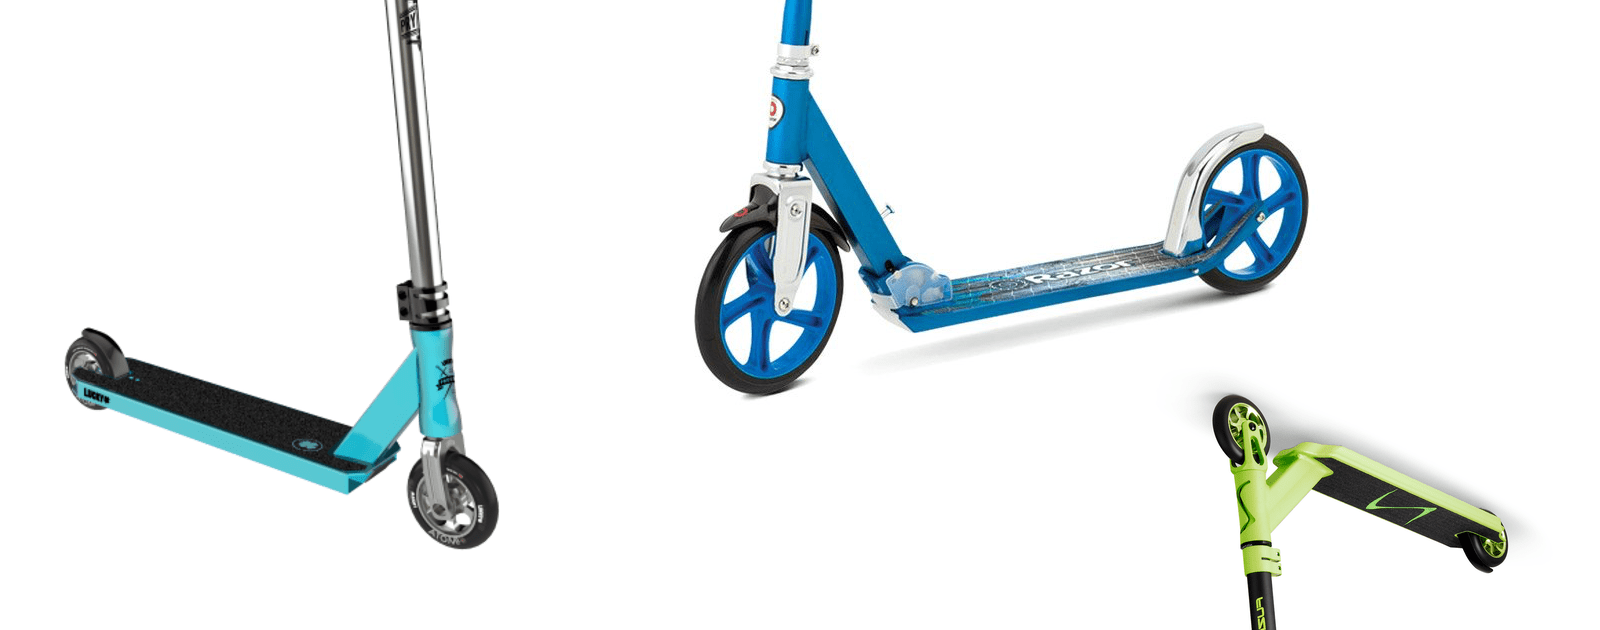 These Smart Scooters are Tracking Your Children